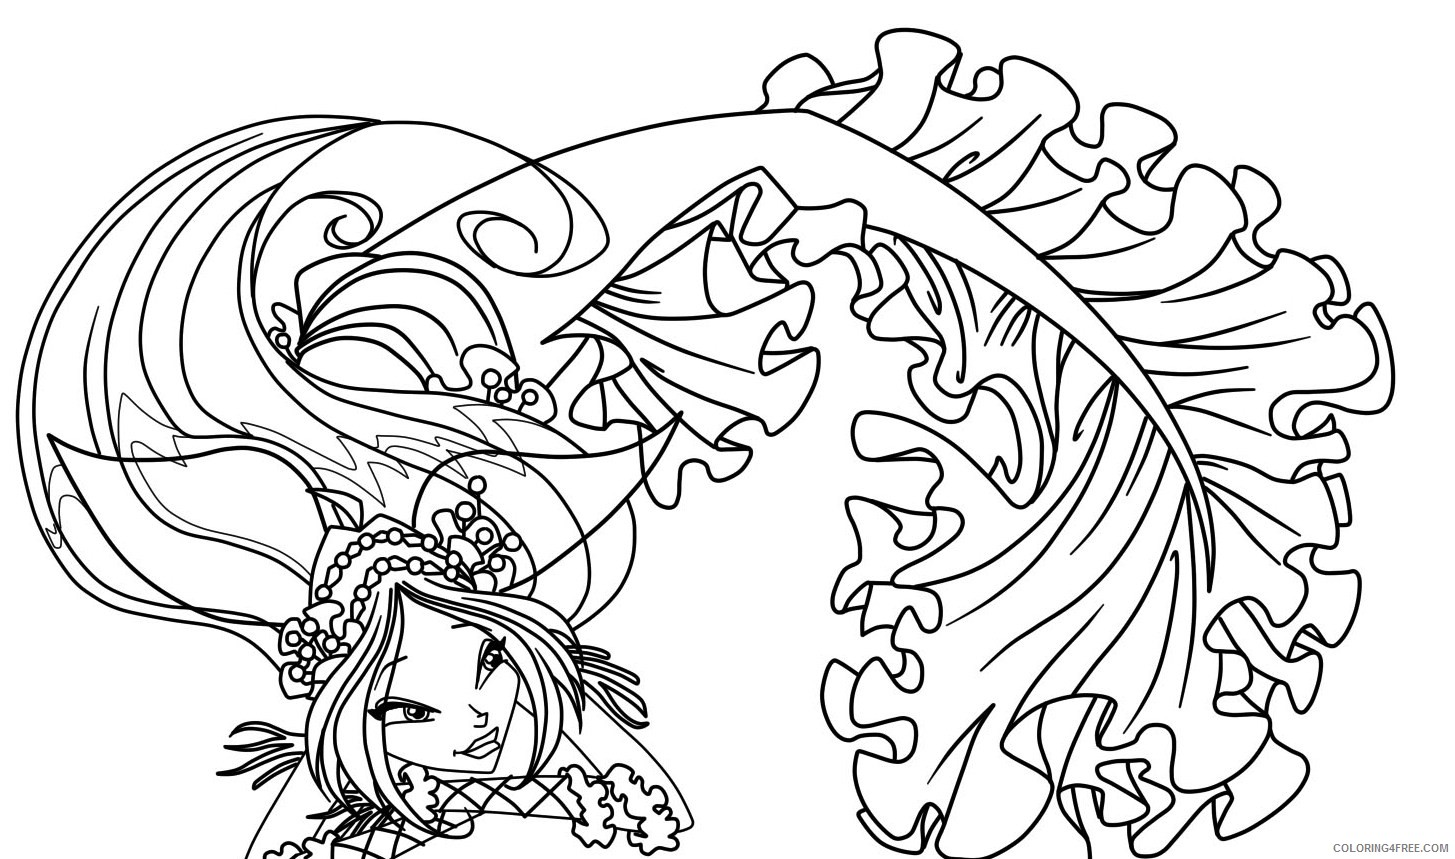 Winx Club Coloring Pages Mermaid Coloring4free Coloring4free Com